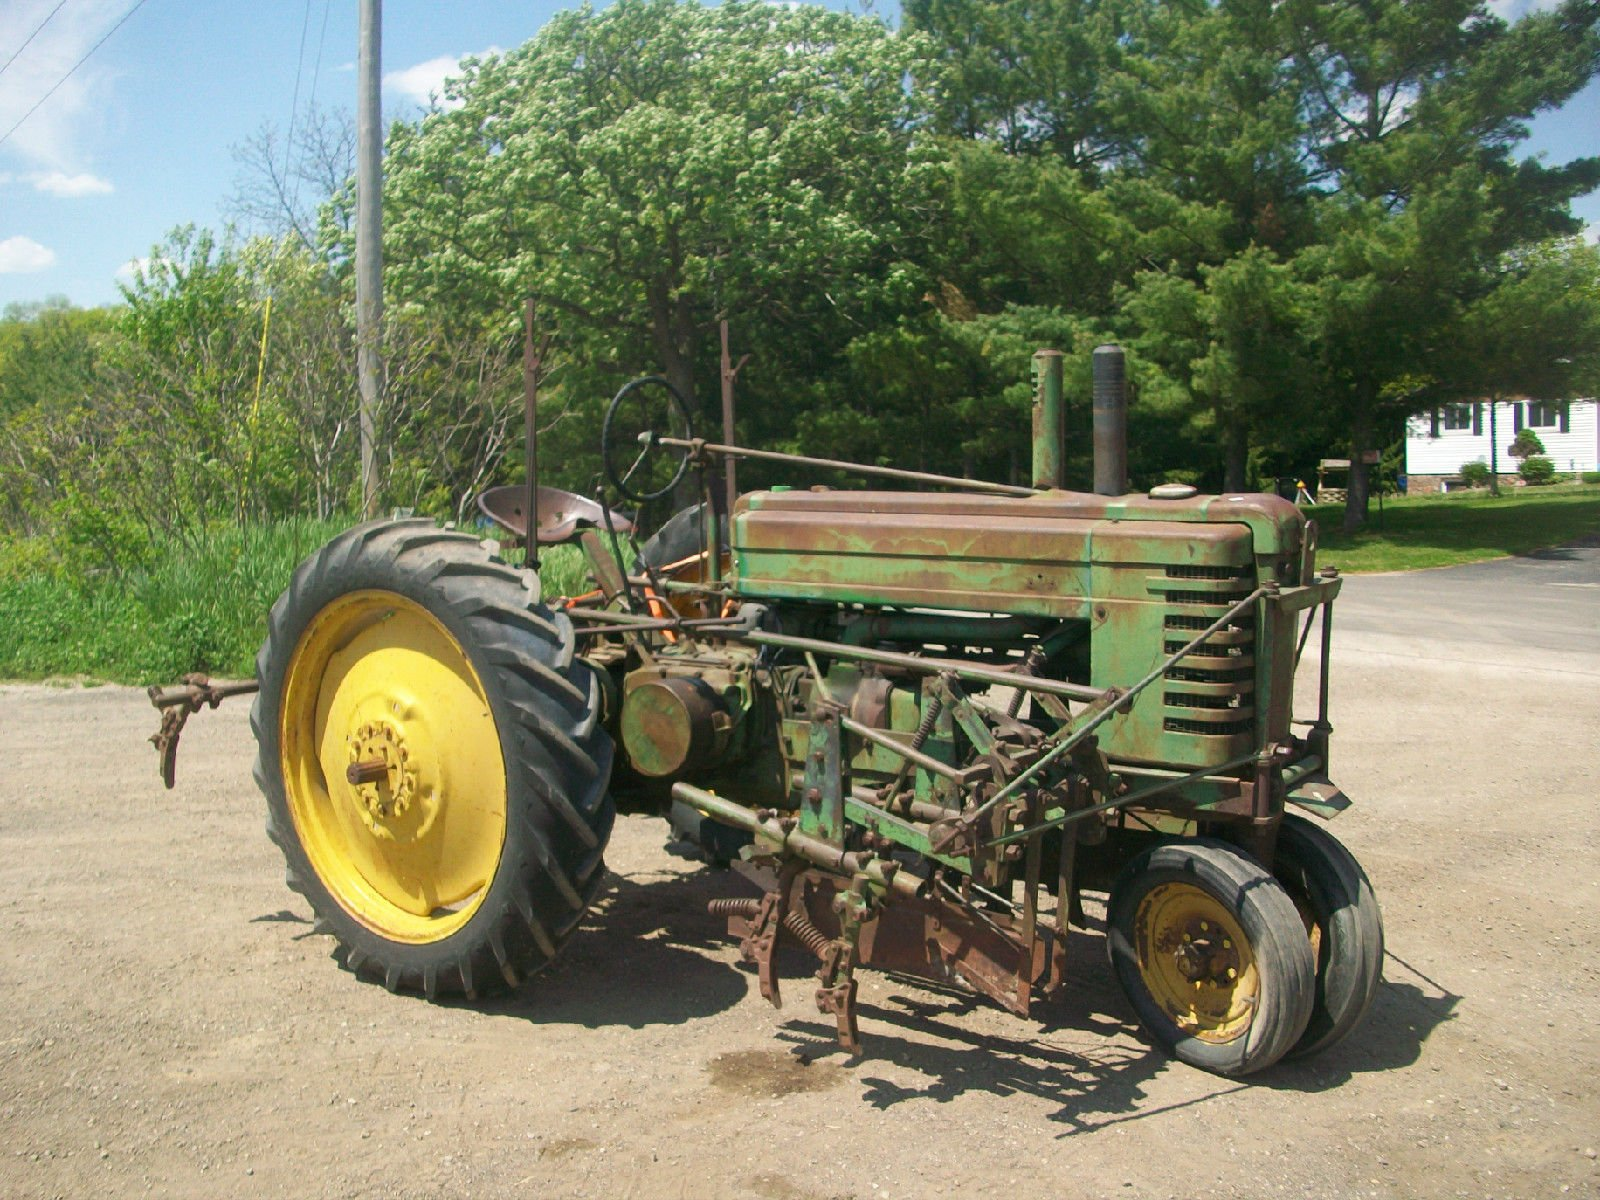 1939 John Deere B Antique Tractor NO RESERVE Cultivators ...